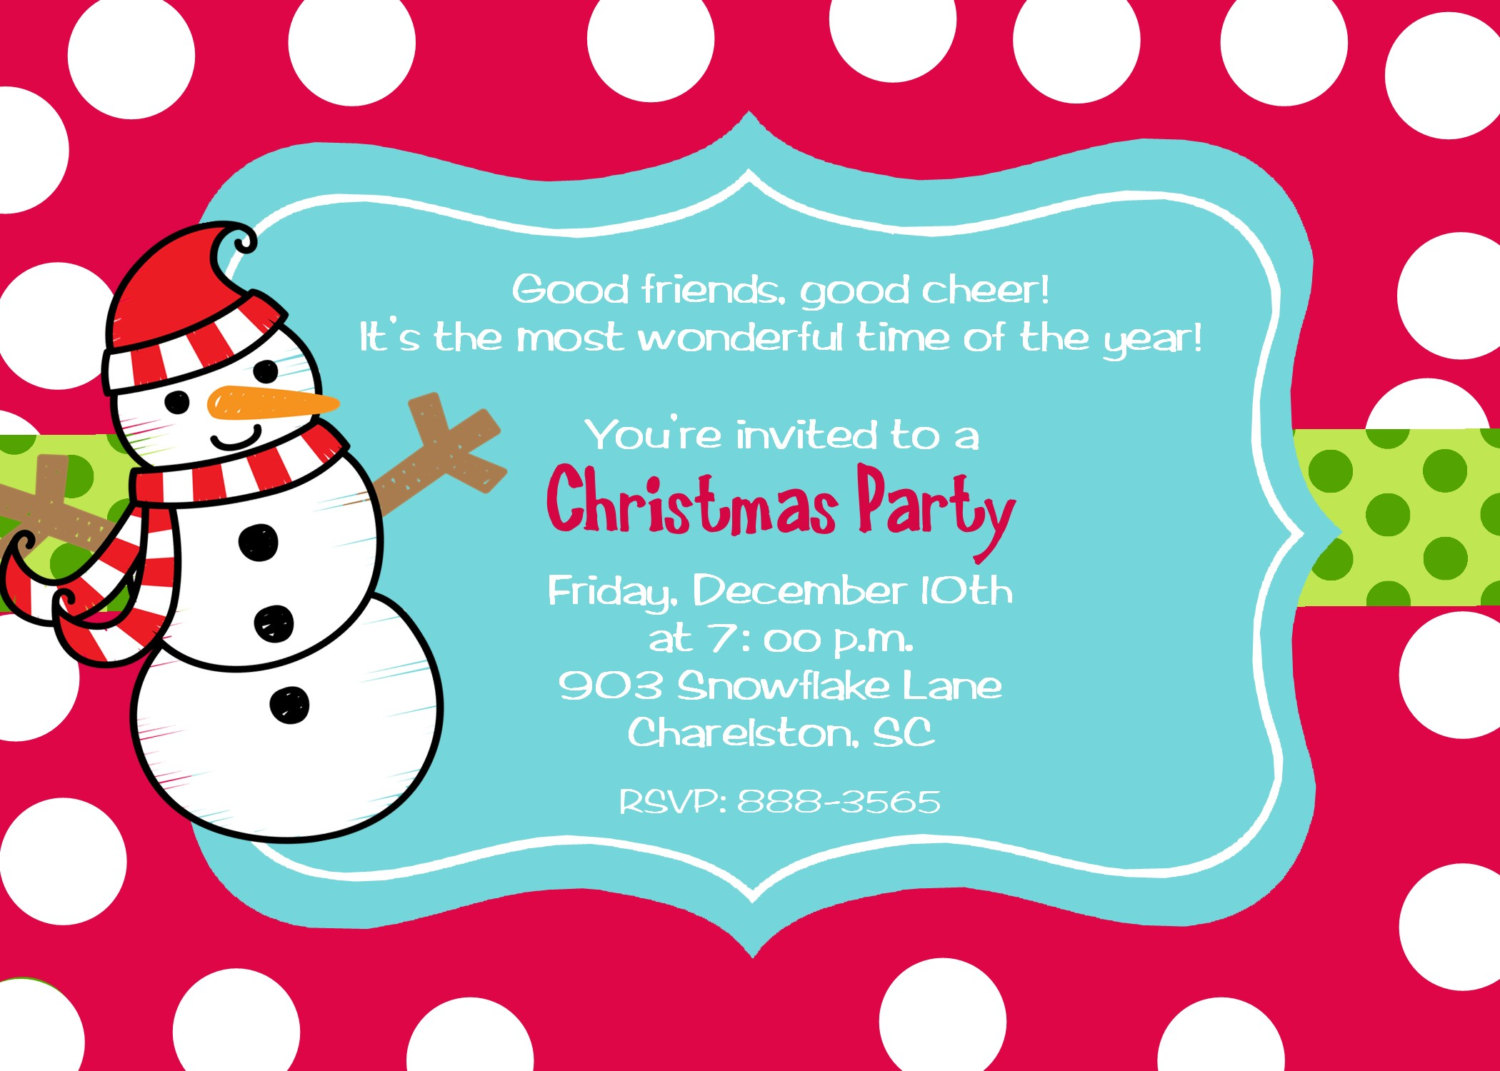 Christmas Party Invitation Poem Funny